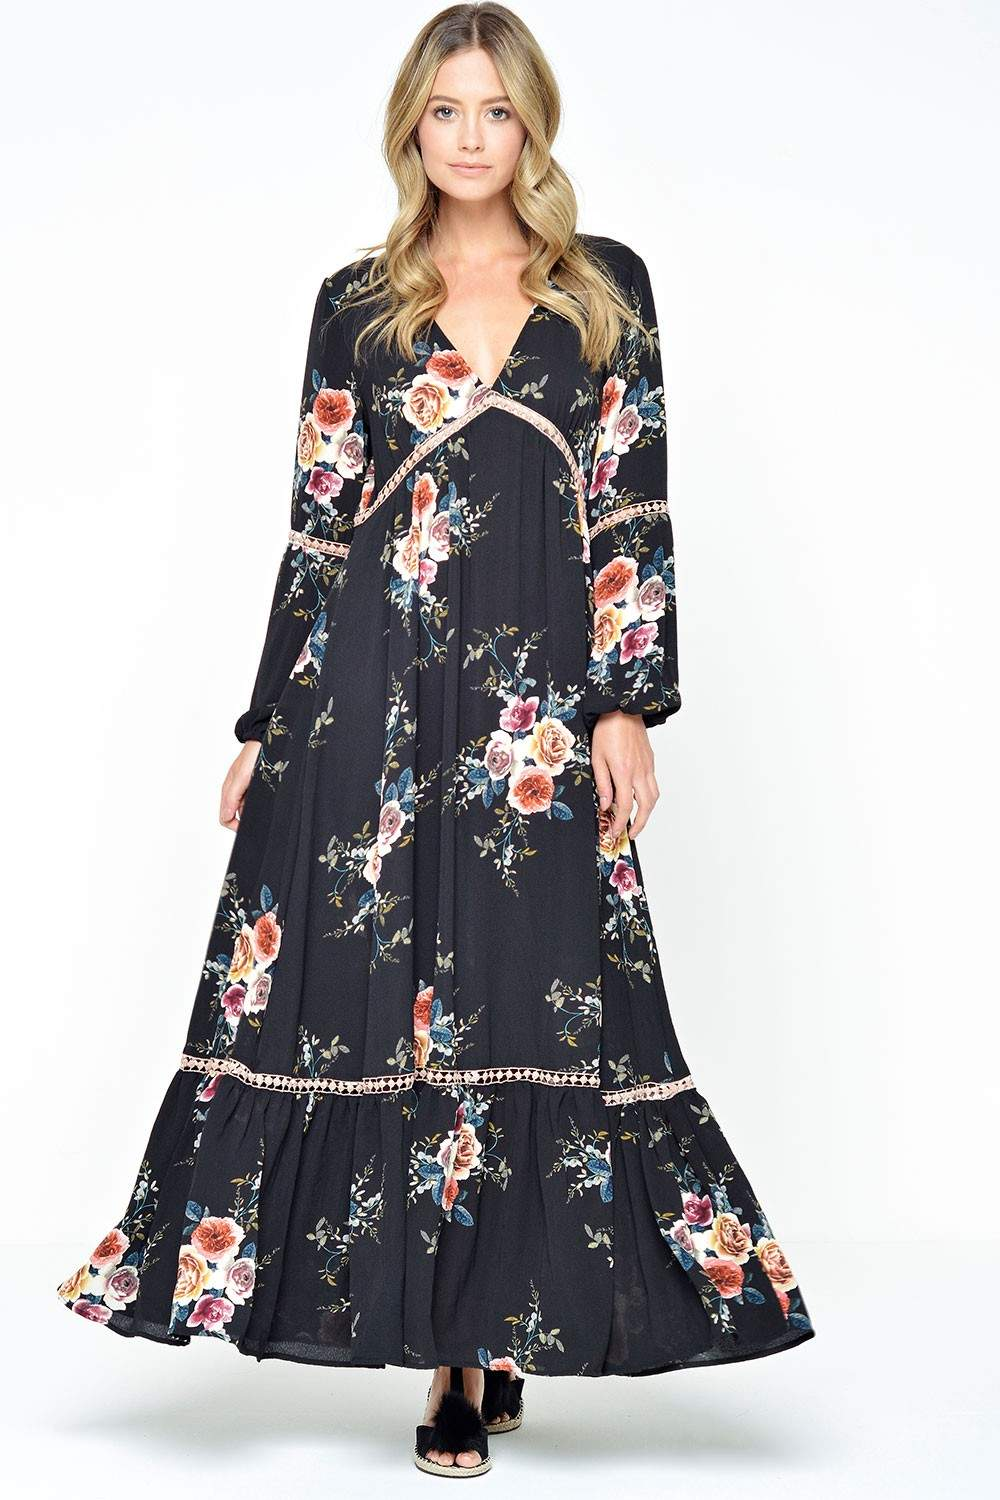 Stella Ivanka Boho Maxi Dress In Black Iclothing